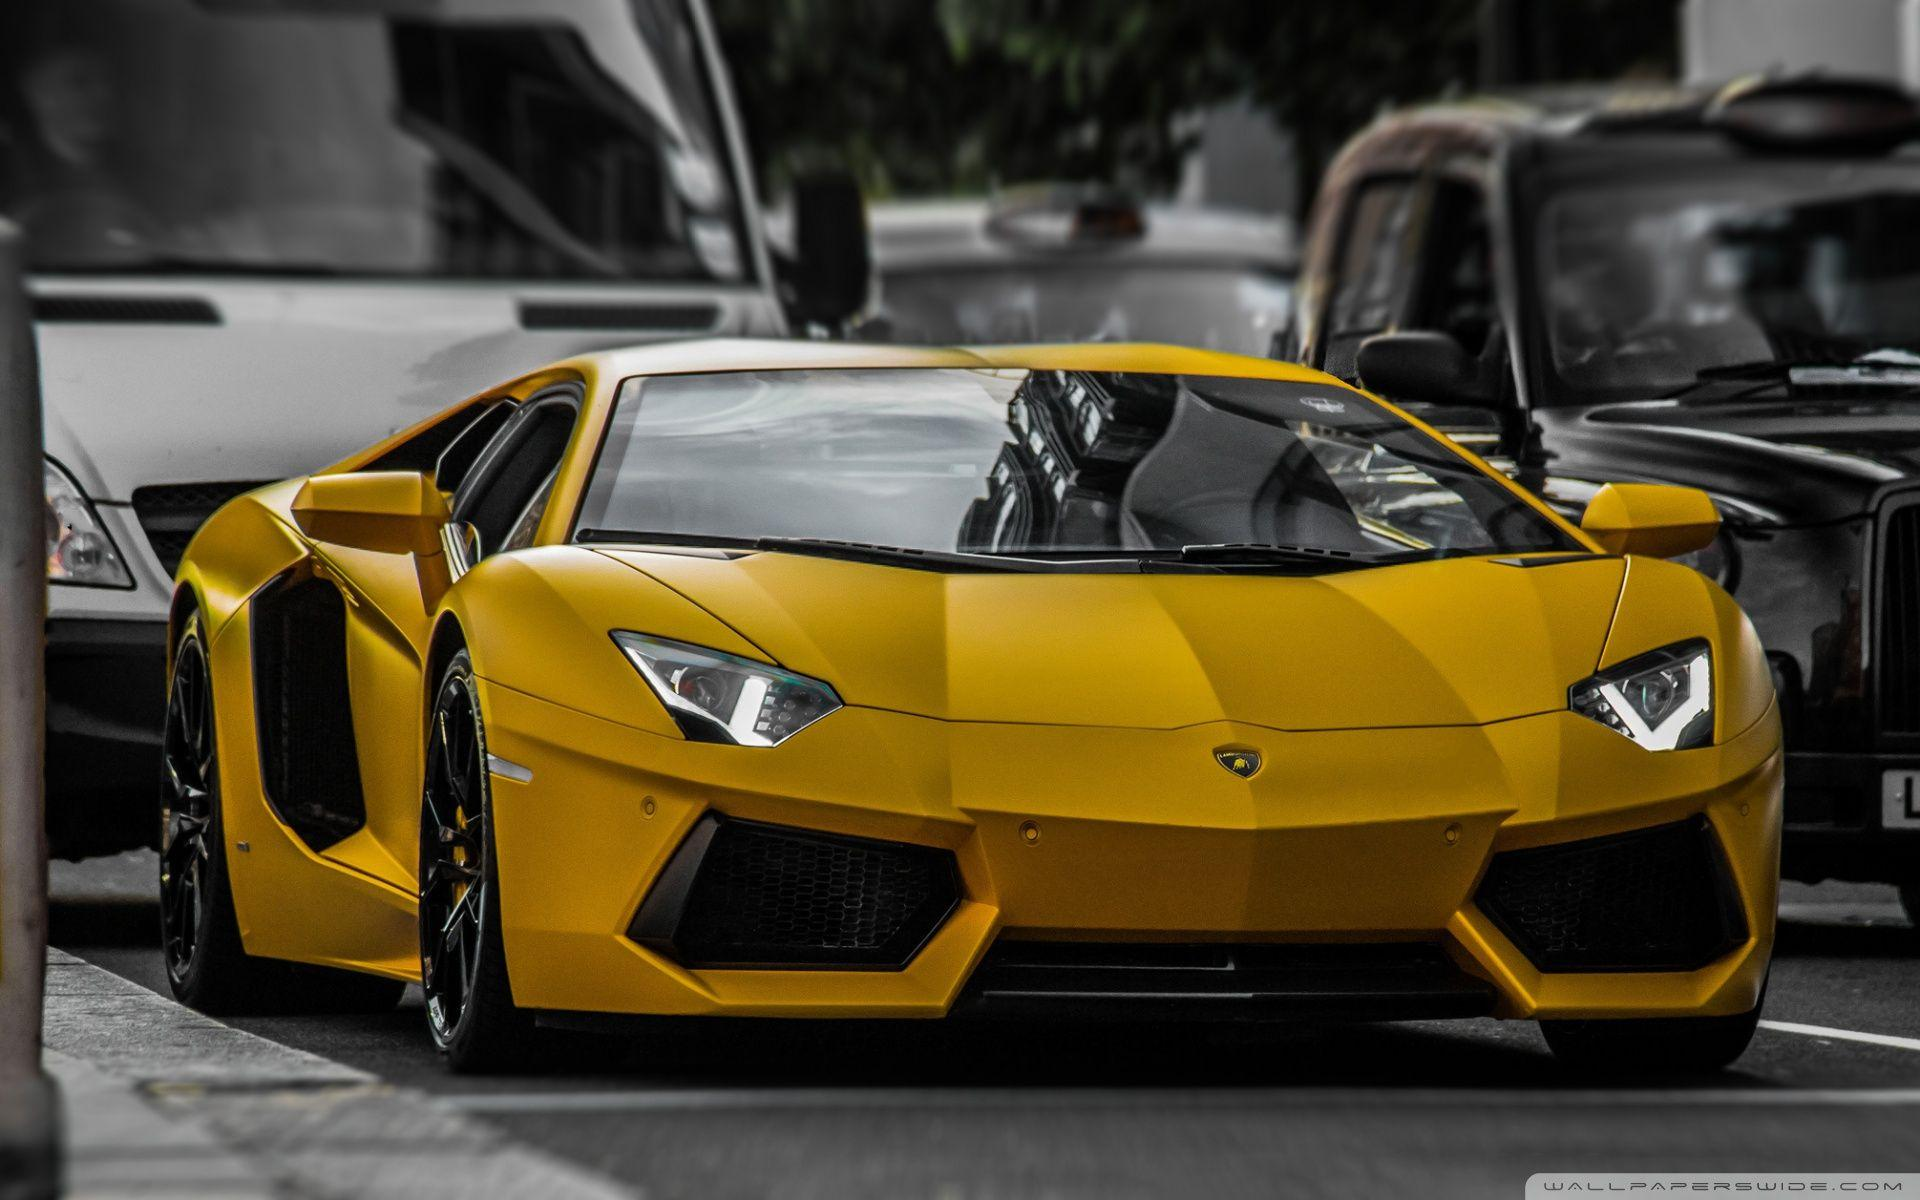 Pack De Wallpaper De Carros Full Hd: Yellow Lamborghini Wallpapers